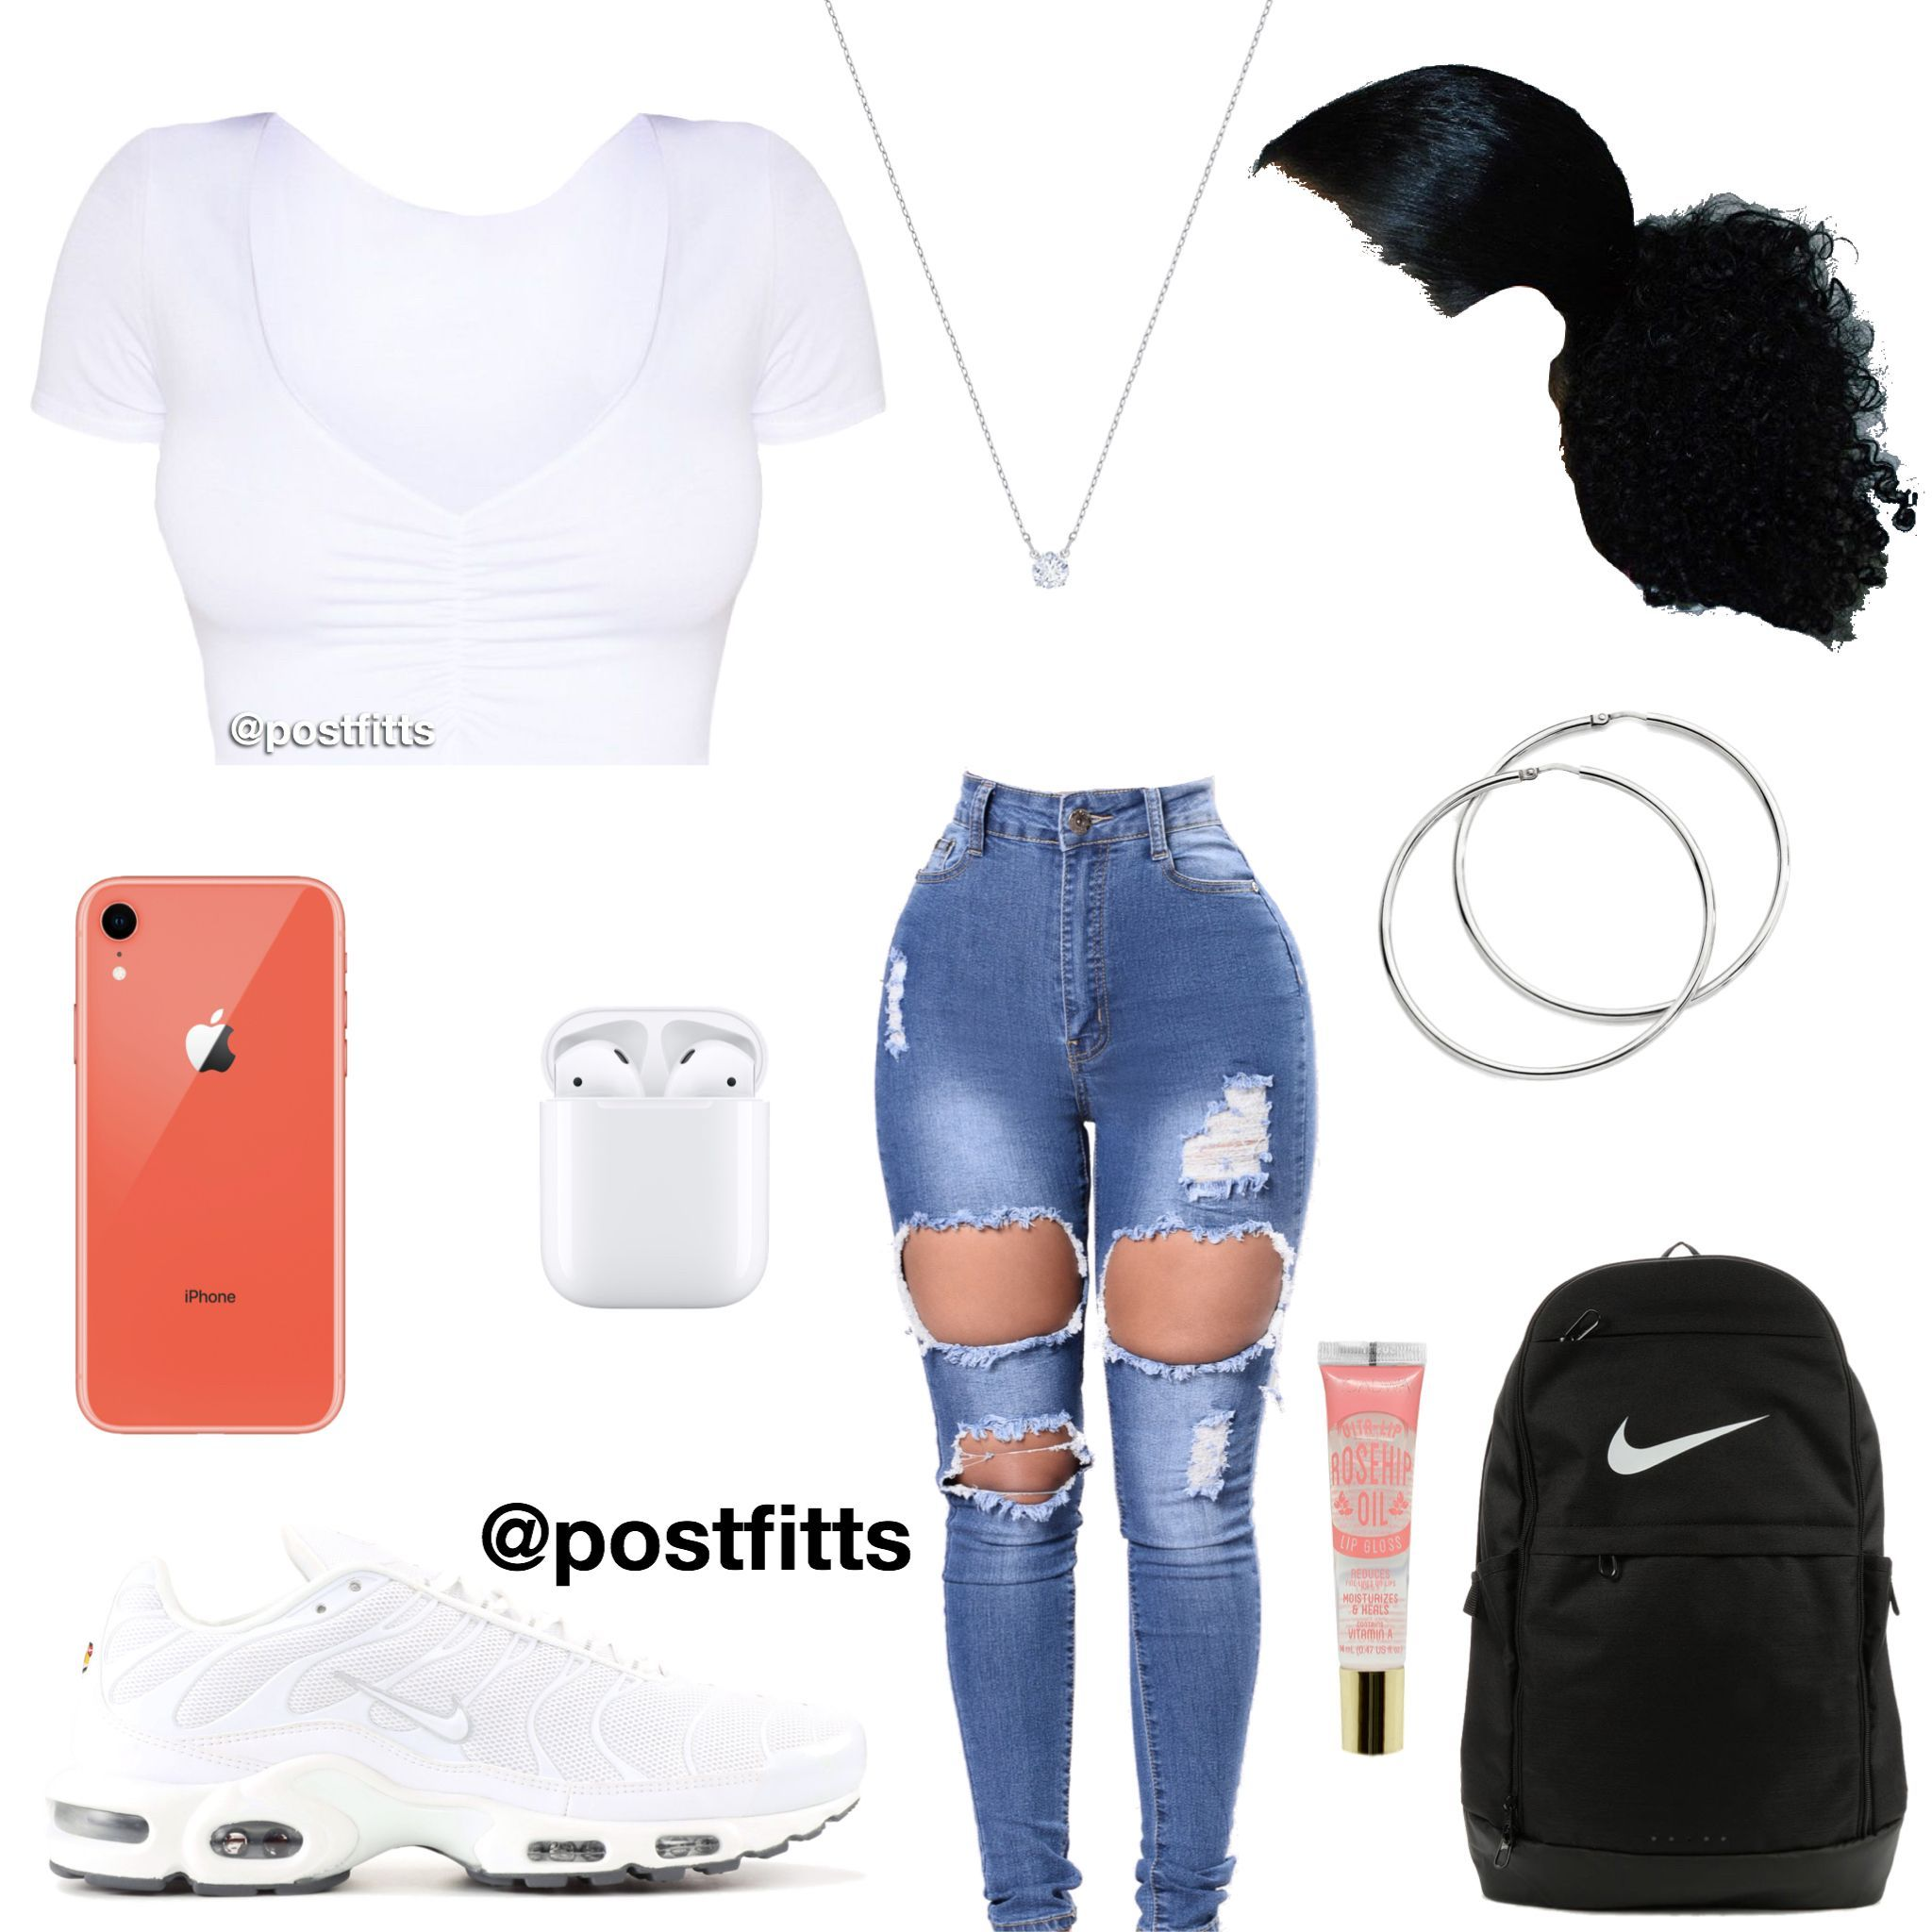 outfits | Instagram: @postfitts #baddieoutfitsforschool outfits | Instagram: @po... 2